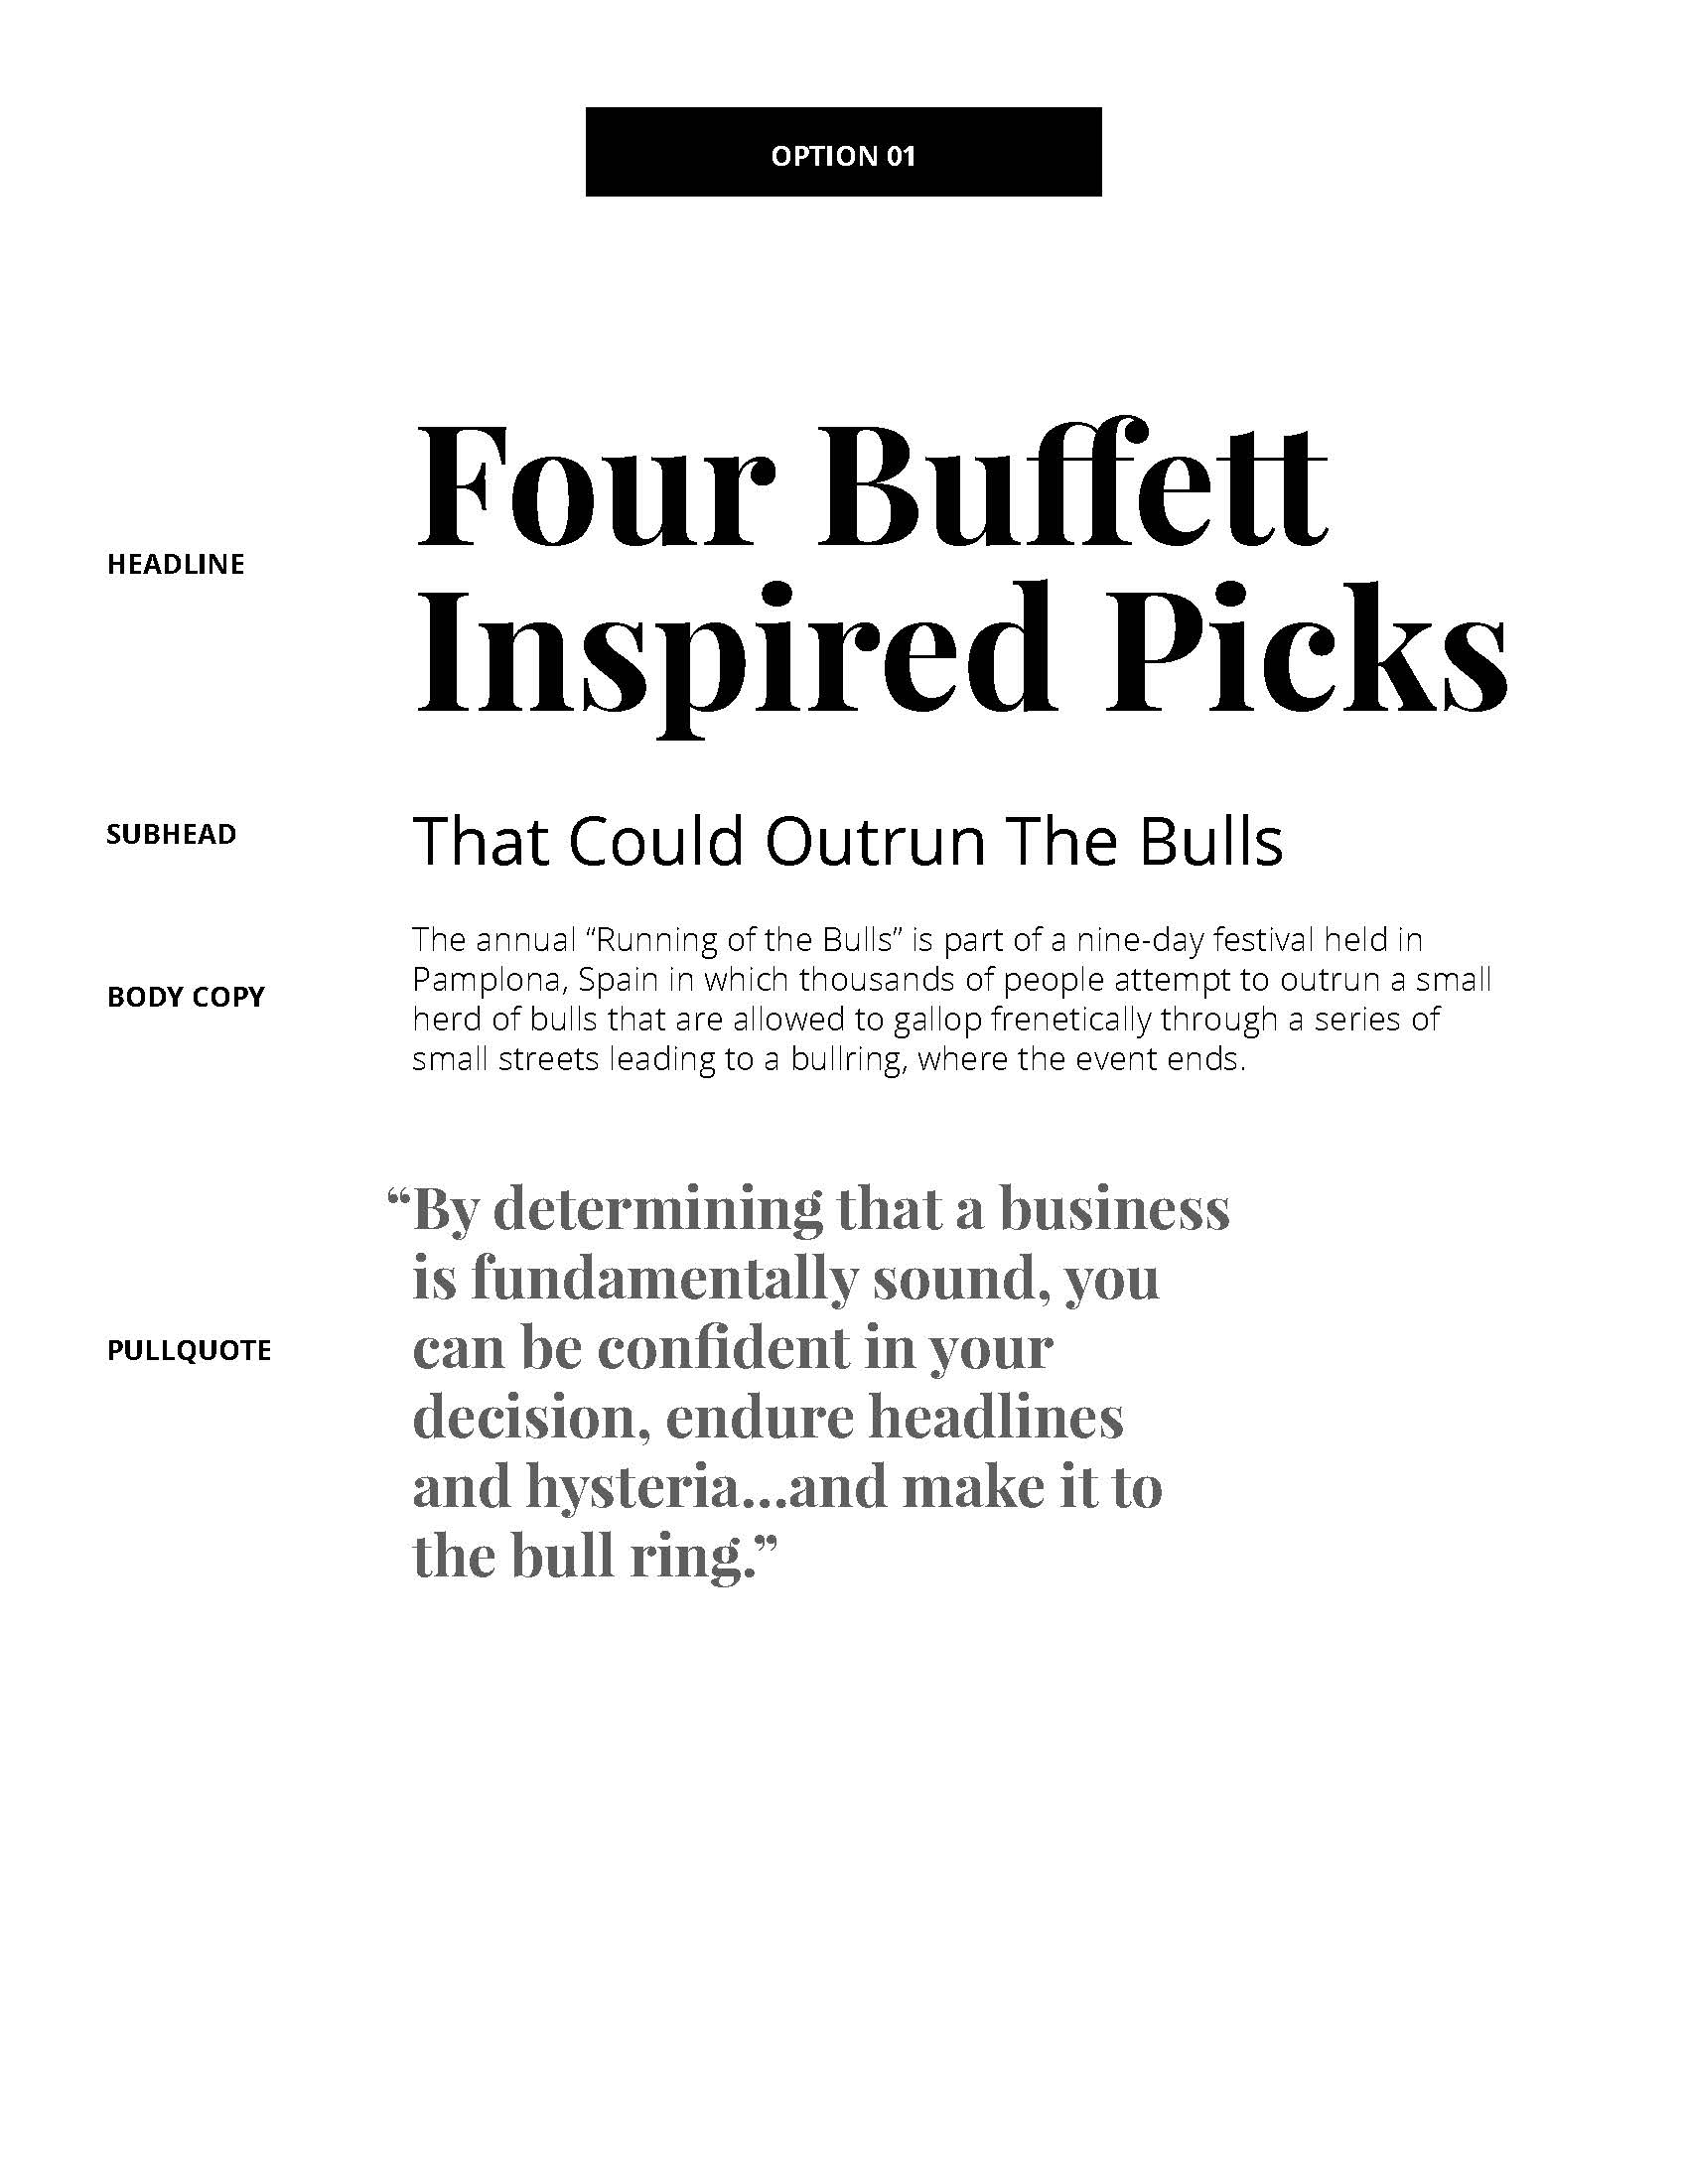 forbes-investment-newsletter-typography-samples_Page_1.jpg